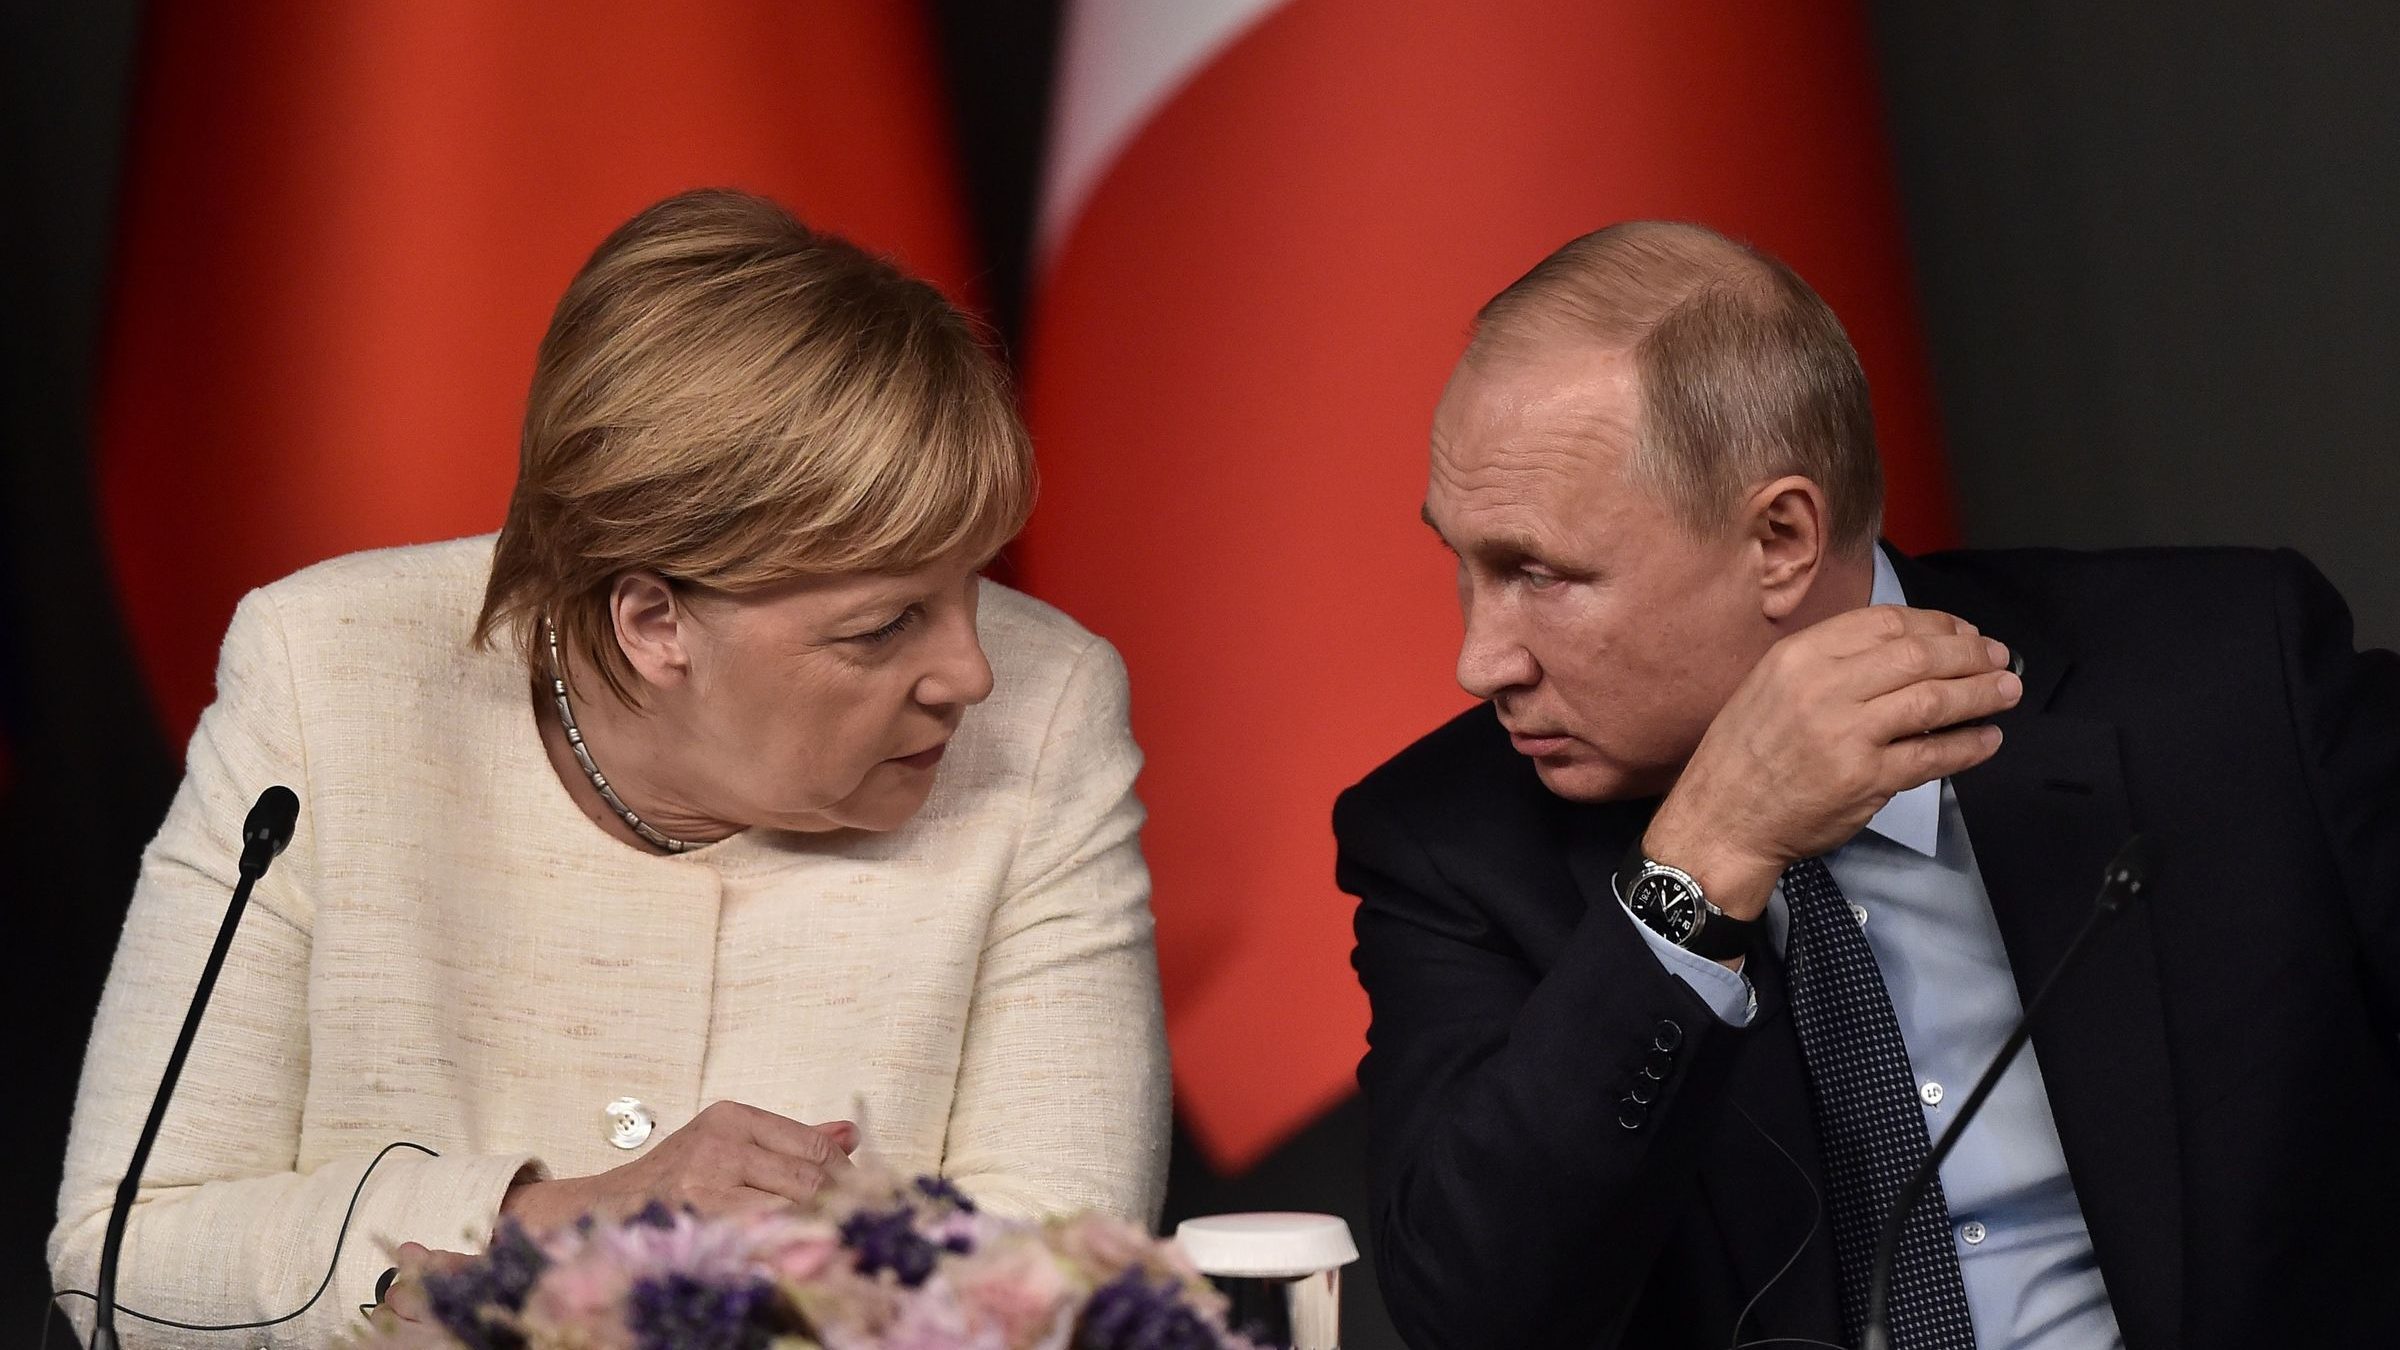 Europe and Russia: the Current Impasse and the Way Out